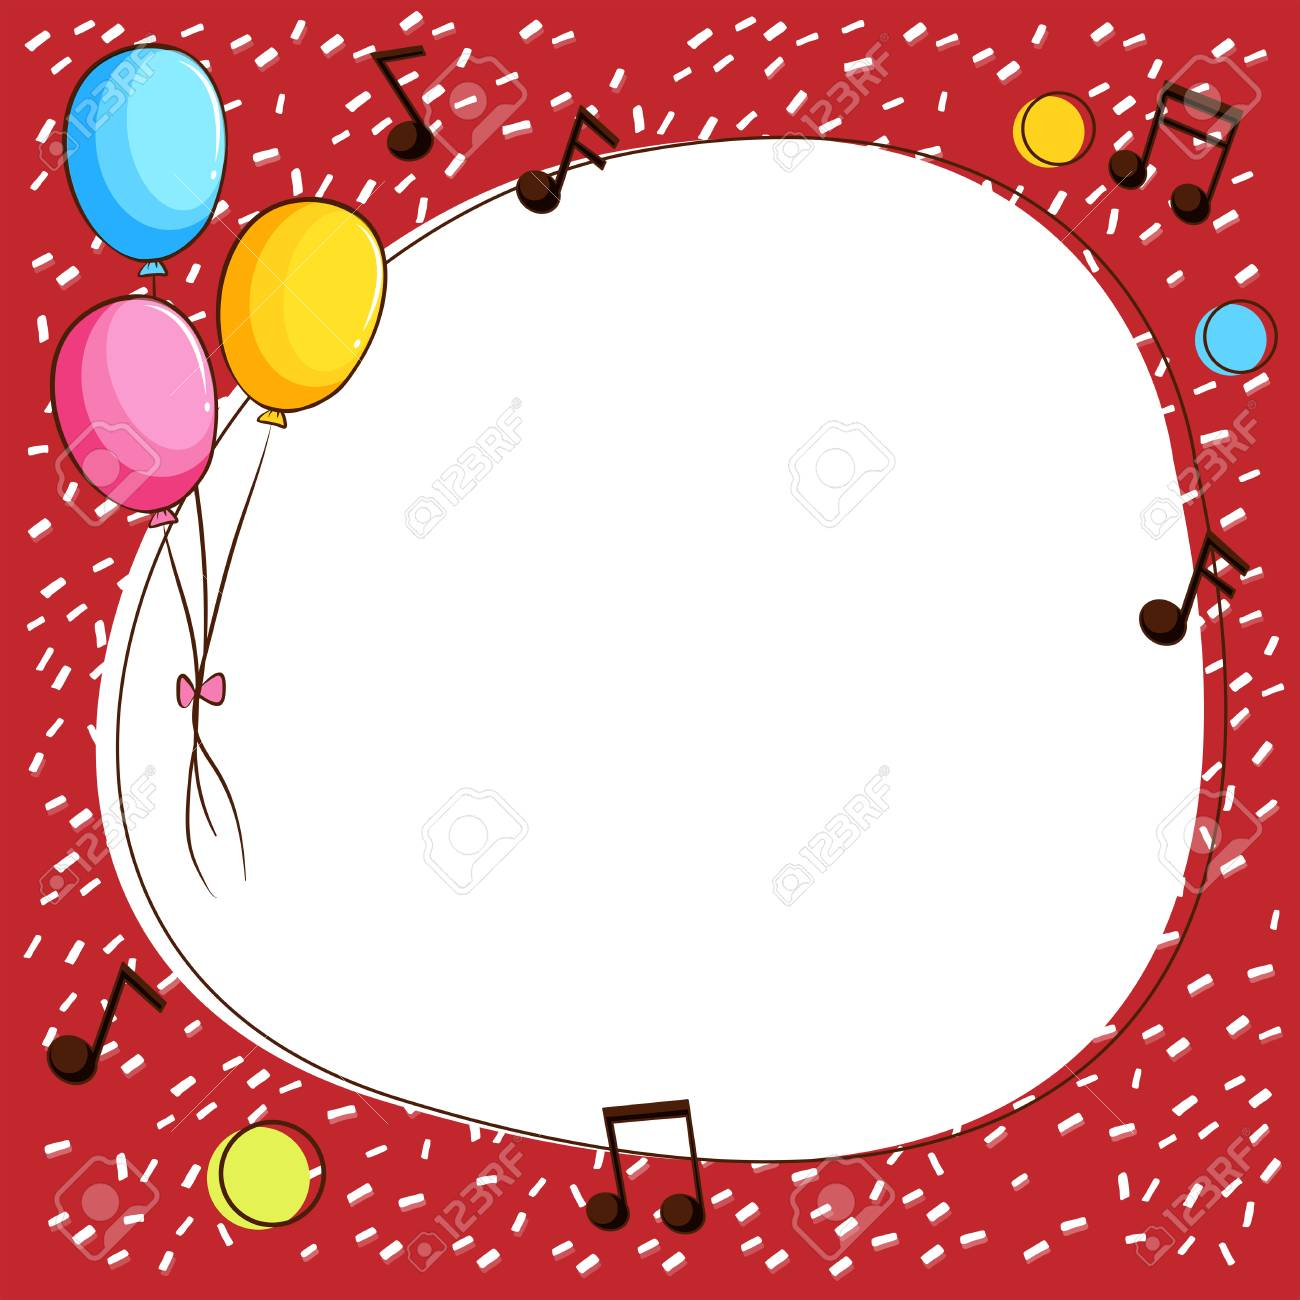 border template with balloons and music notes illustration royalty